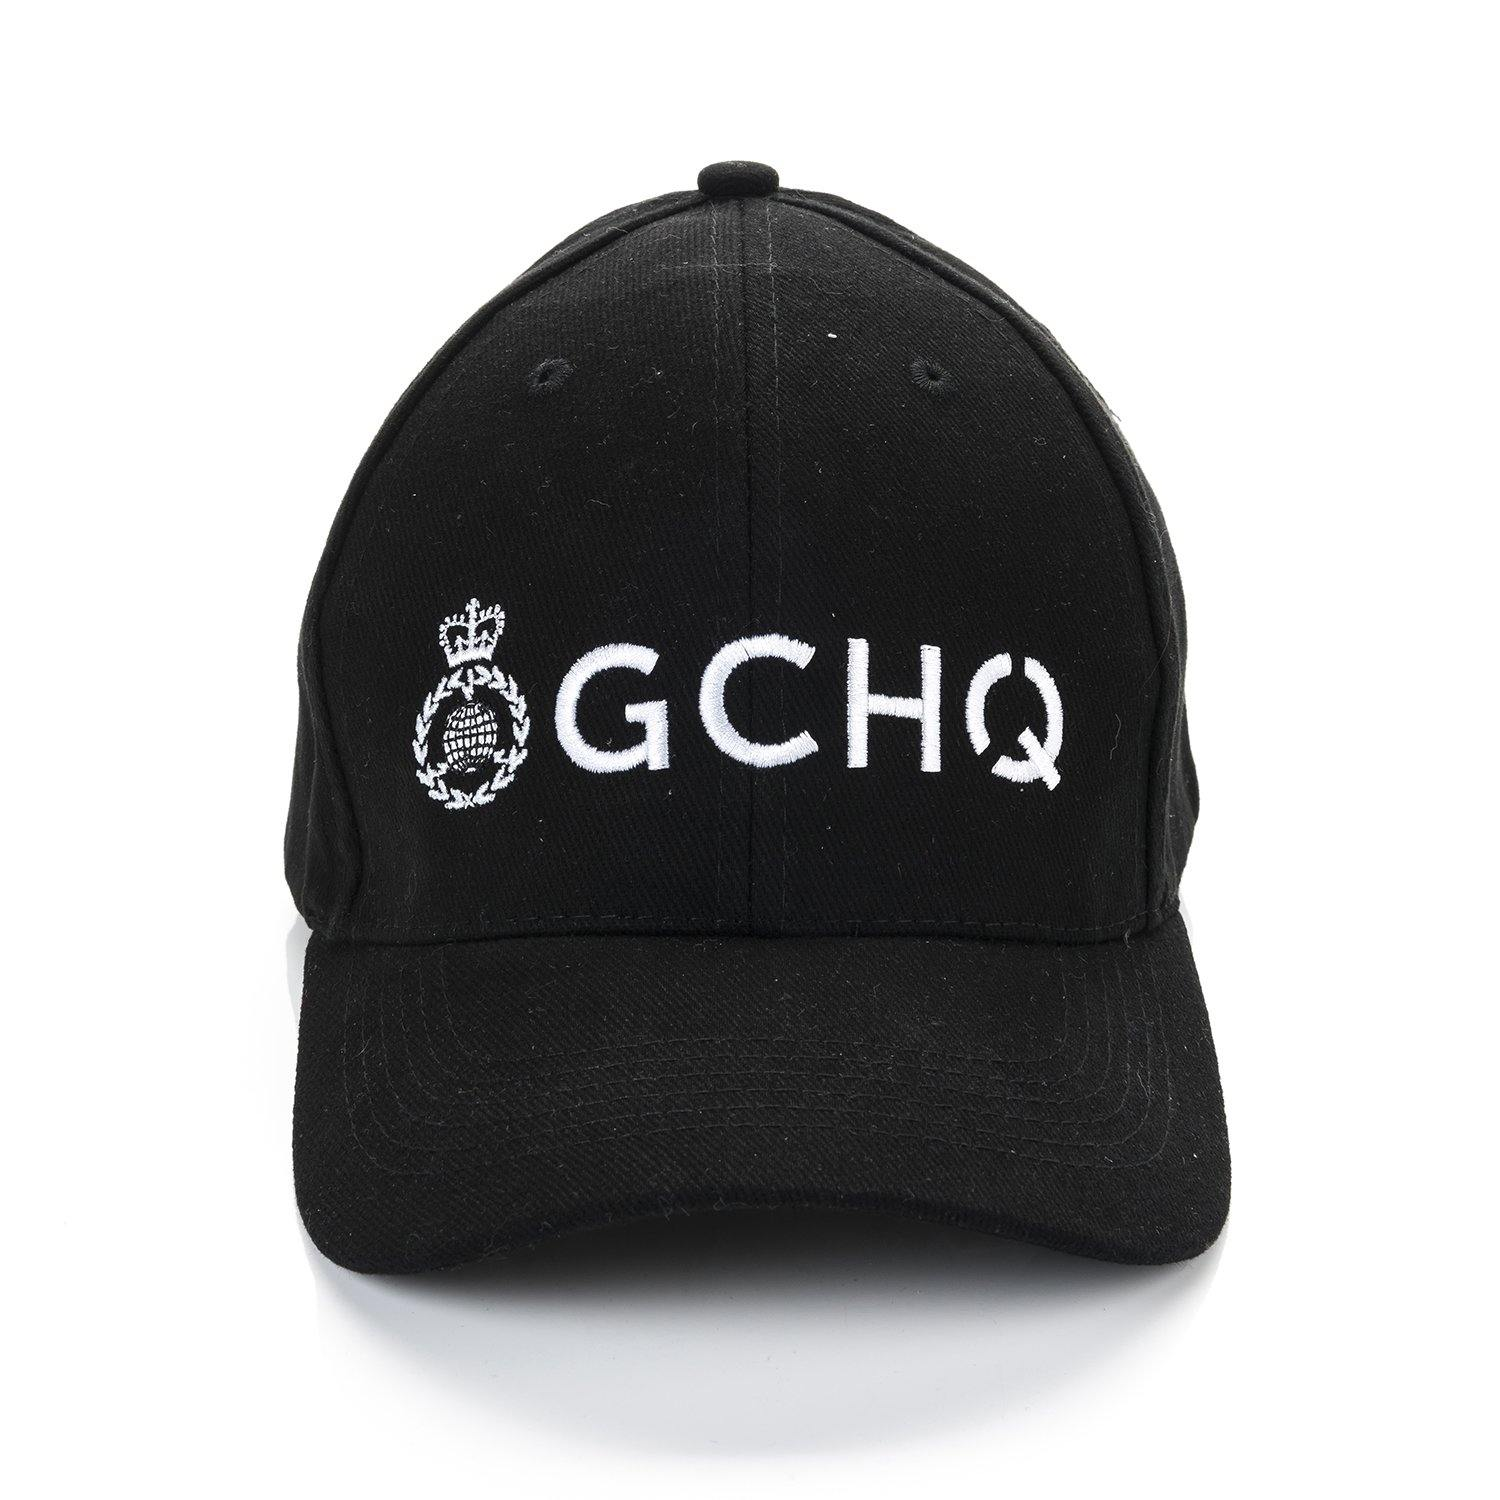 Science Museum GCHQ Cap2